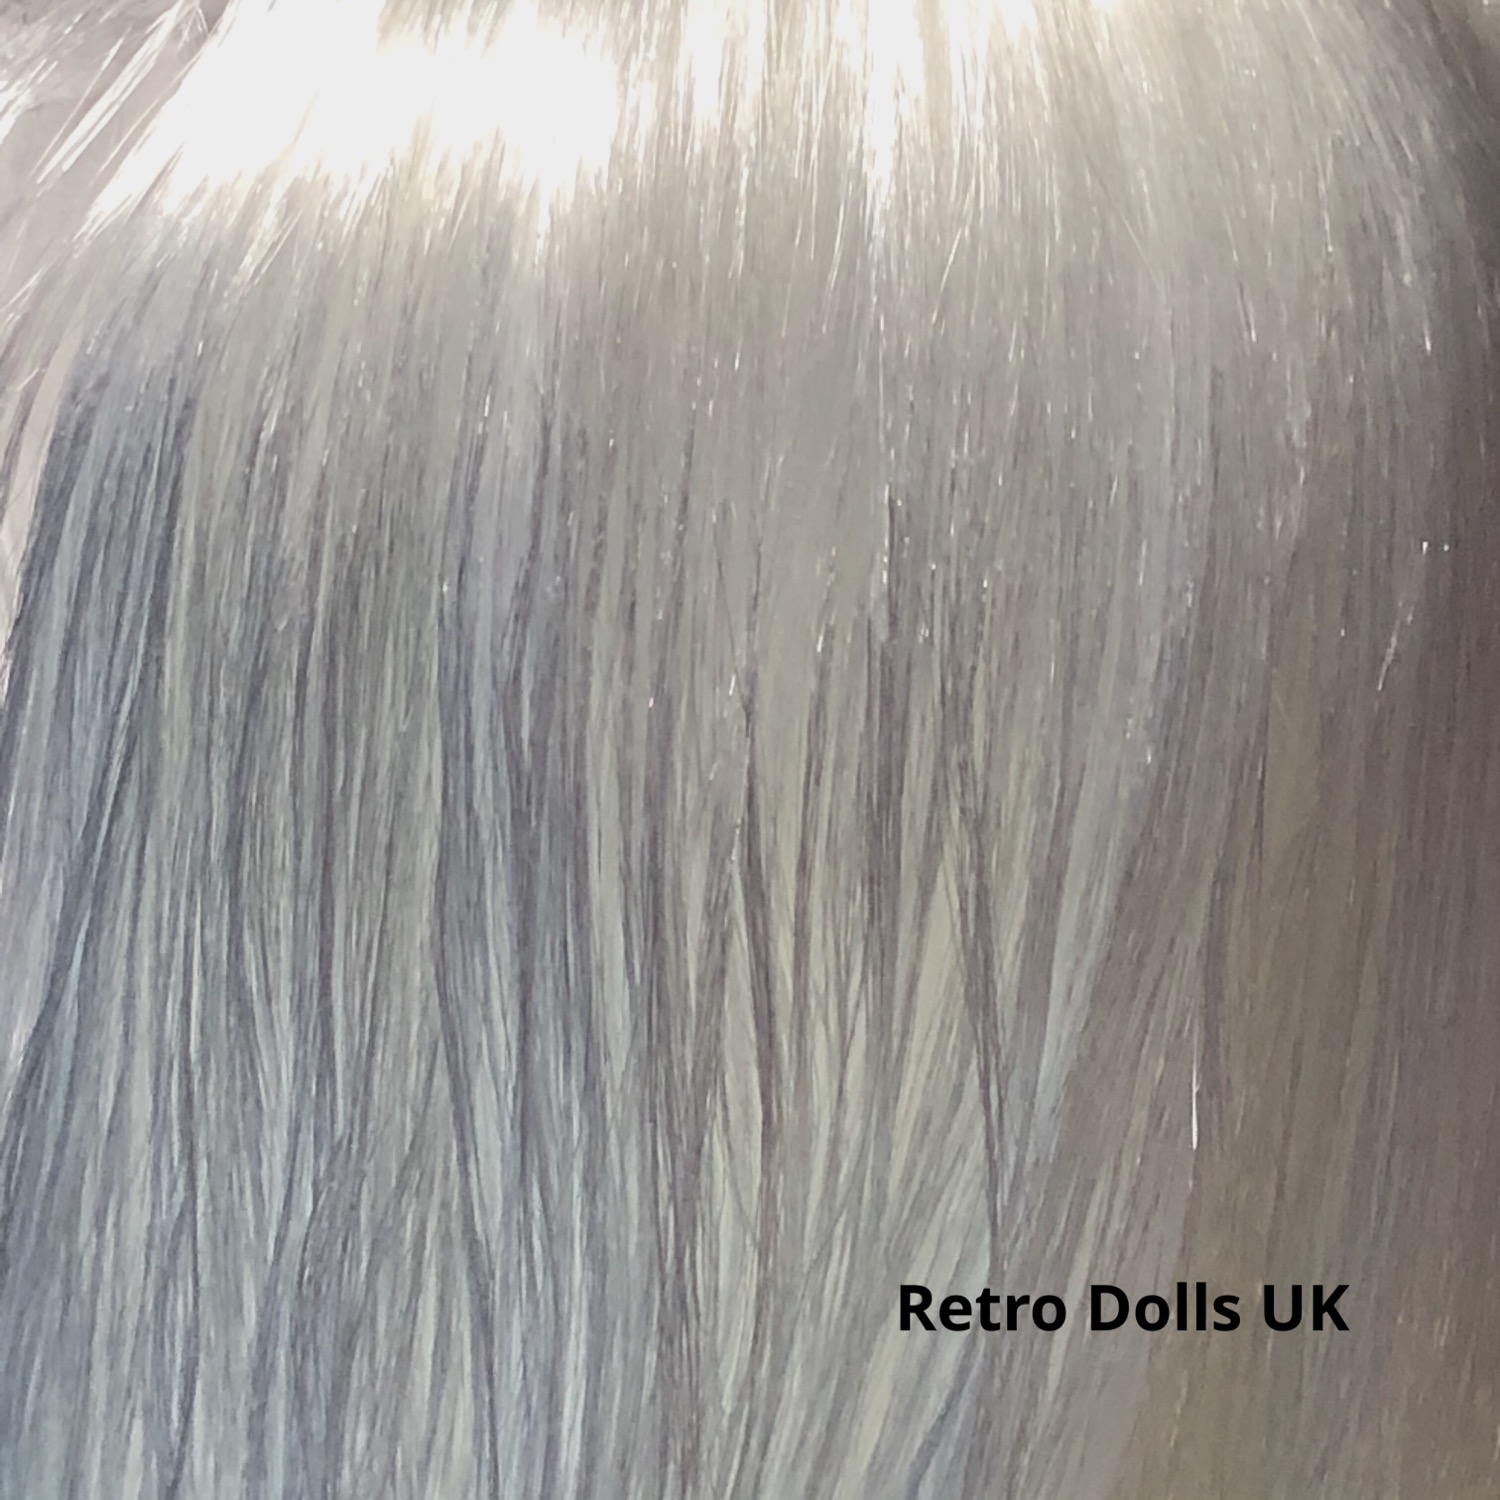 Metallic White Nylon doll hair from The Doll Hair Emporium